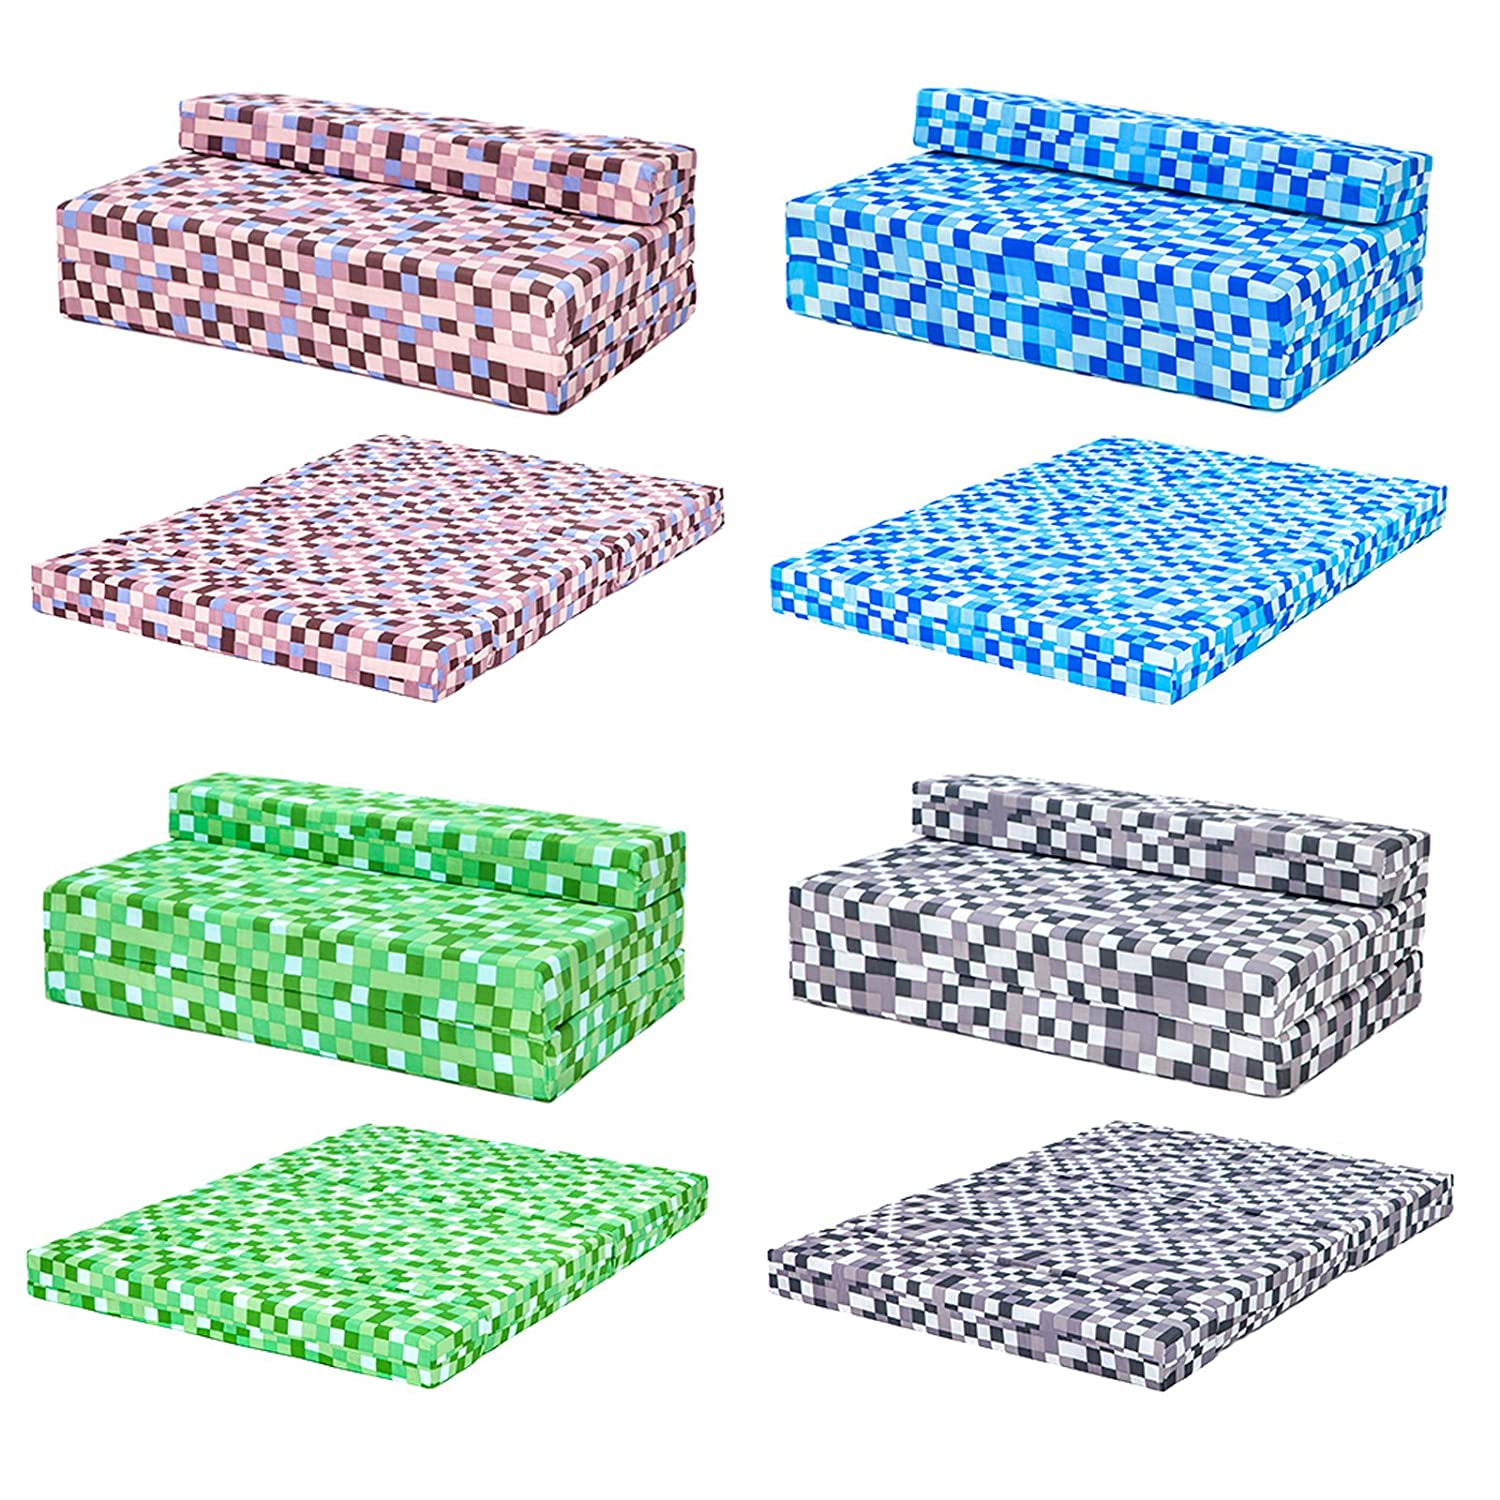 Blue Pixels Design Double Foam Fold Out Z Bed Sofa Guest Mattress Sleepover Ready Steady Bed